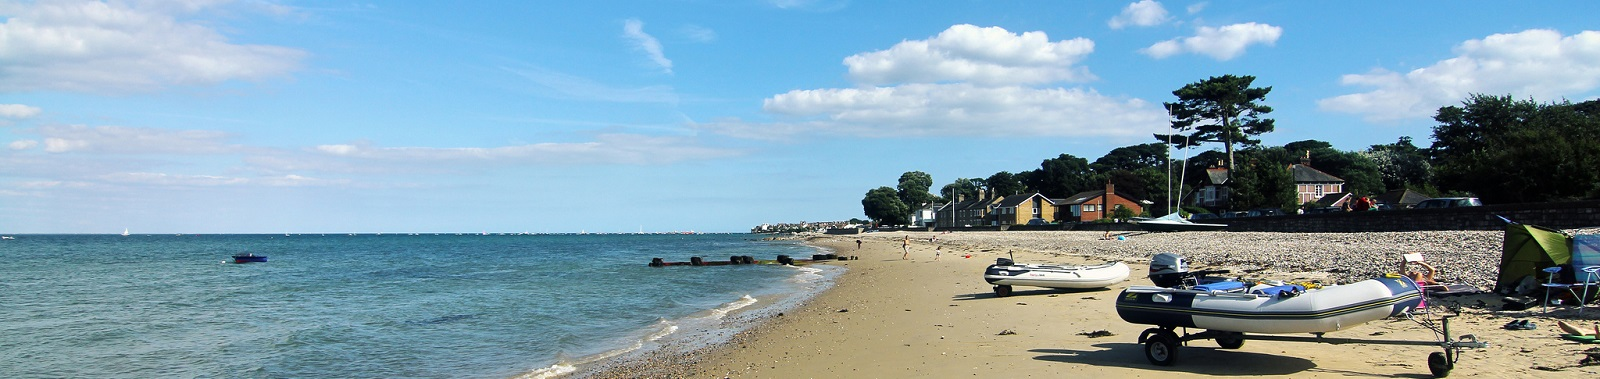 Wight Coast Holidays Self Catering Holiday Accommodation on The Isle of Wight